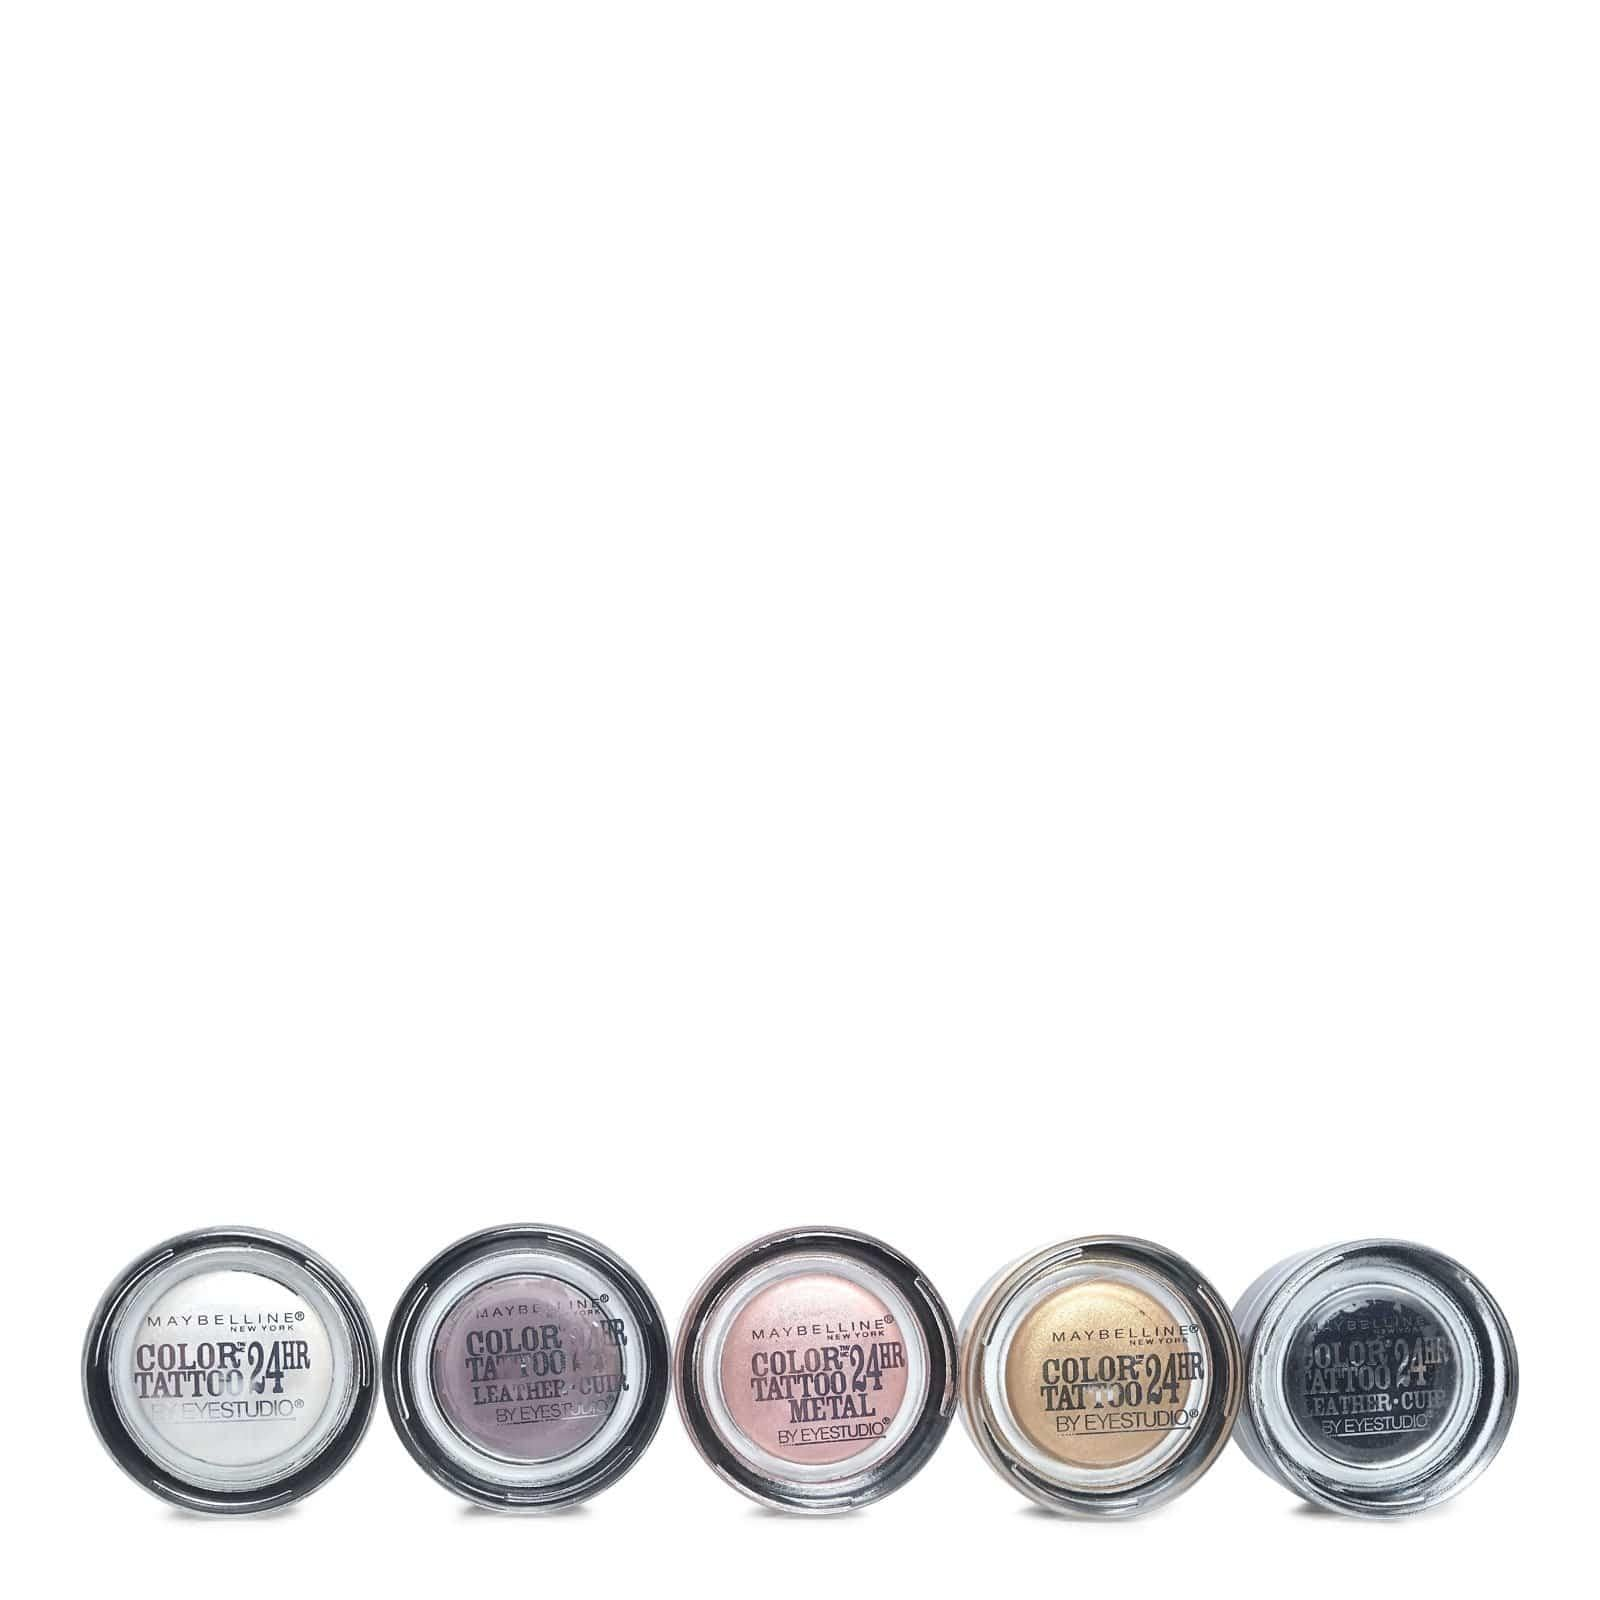 Maybelline Eyestudio Color Tattoo Assortment -  Shimmery, metallic colors